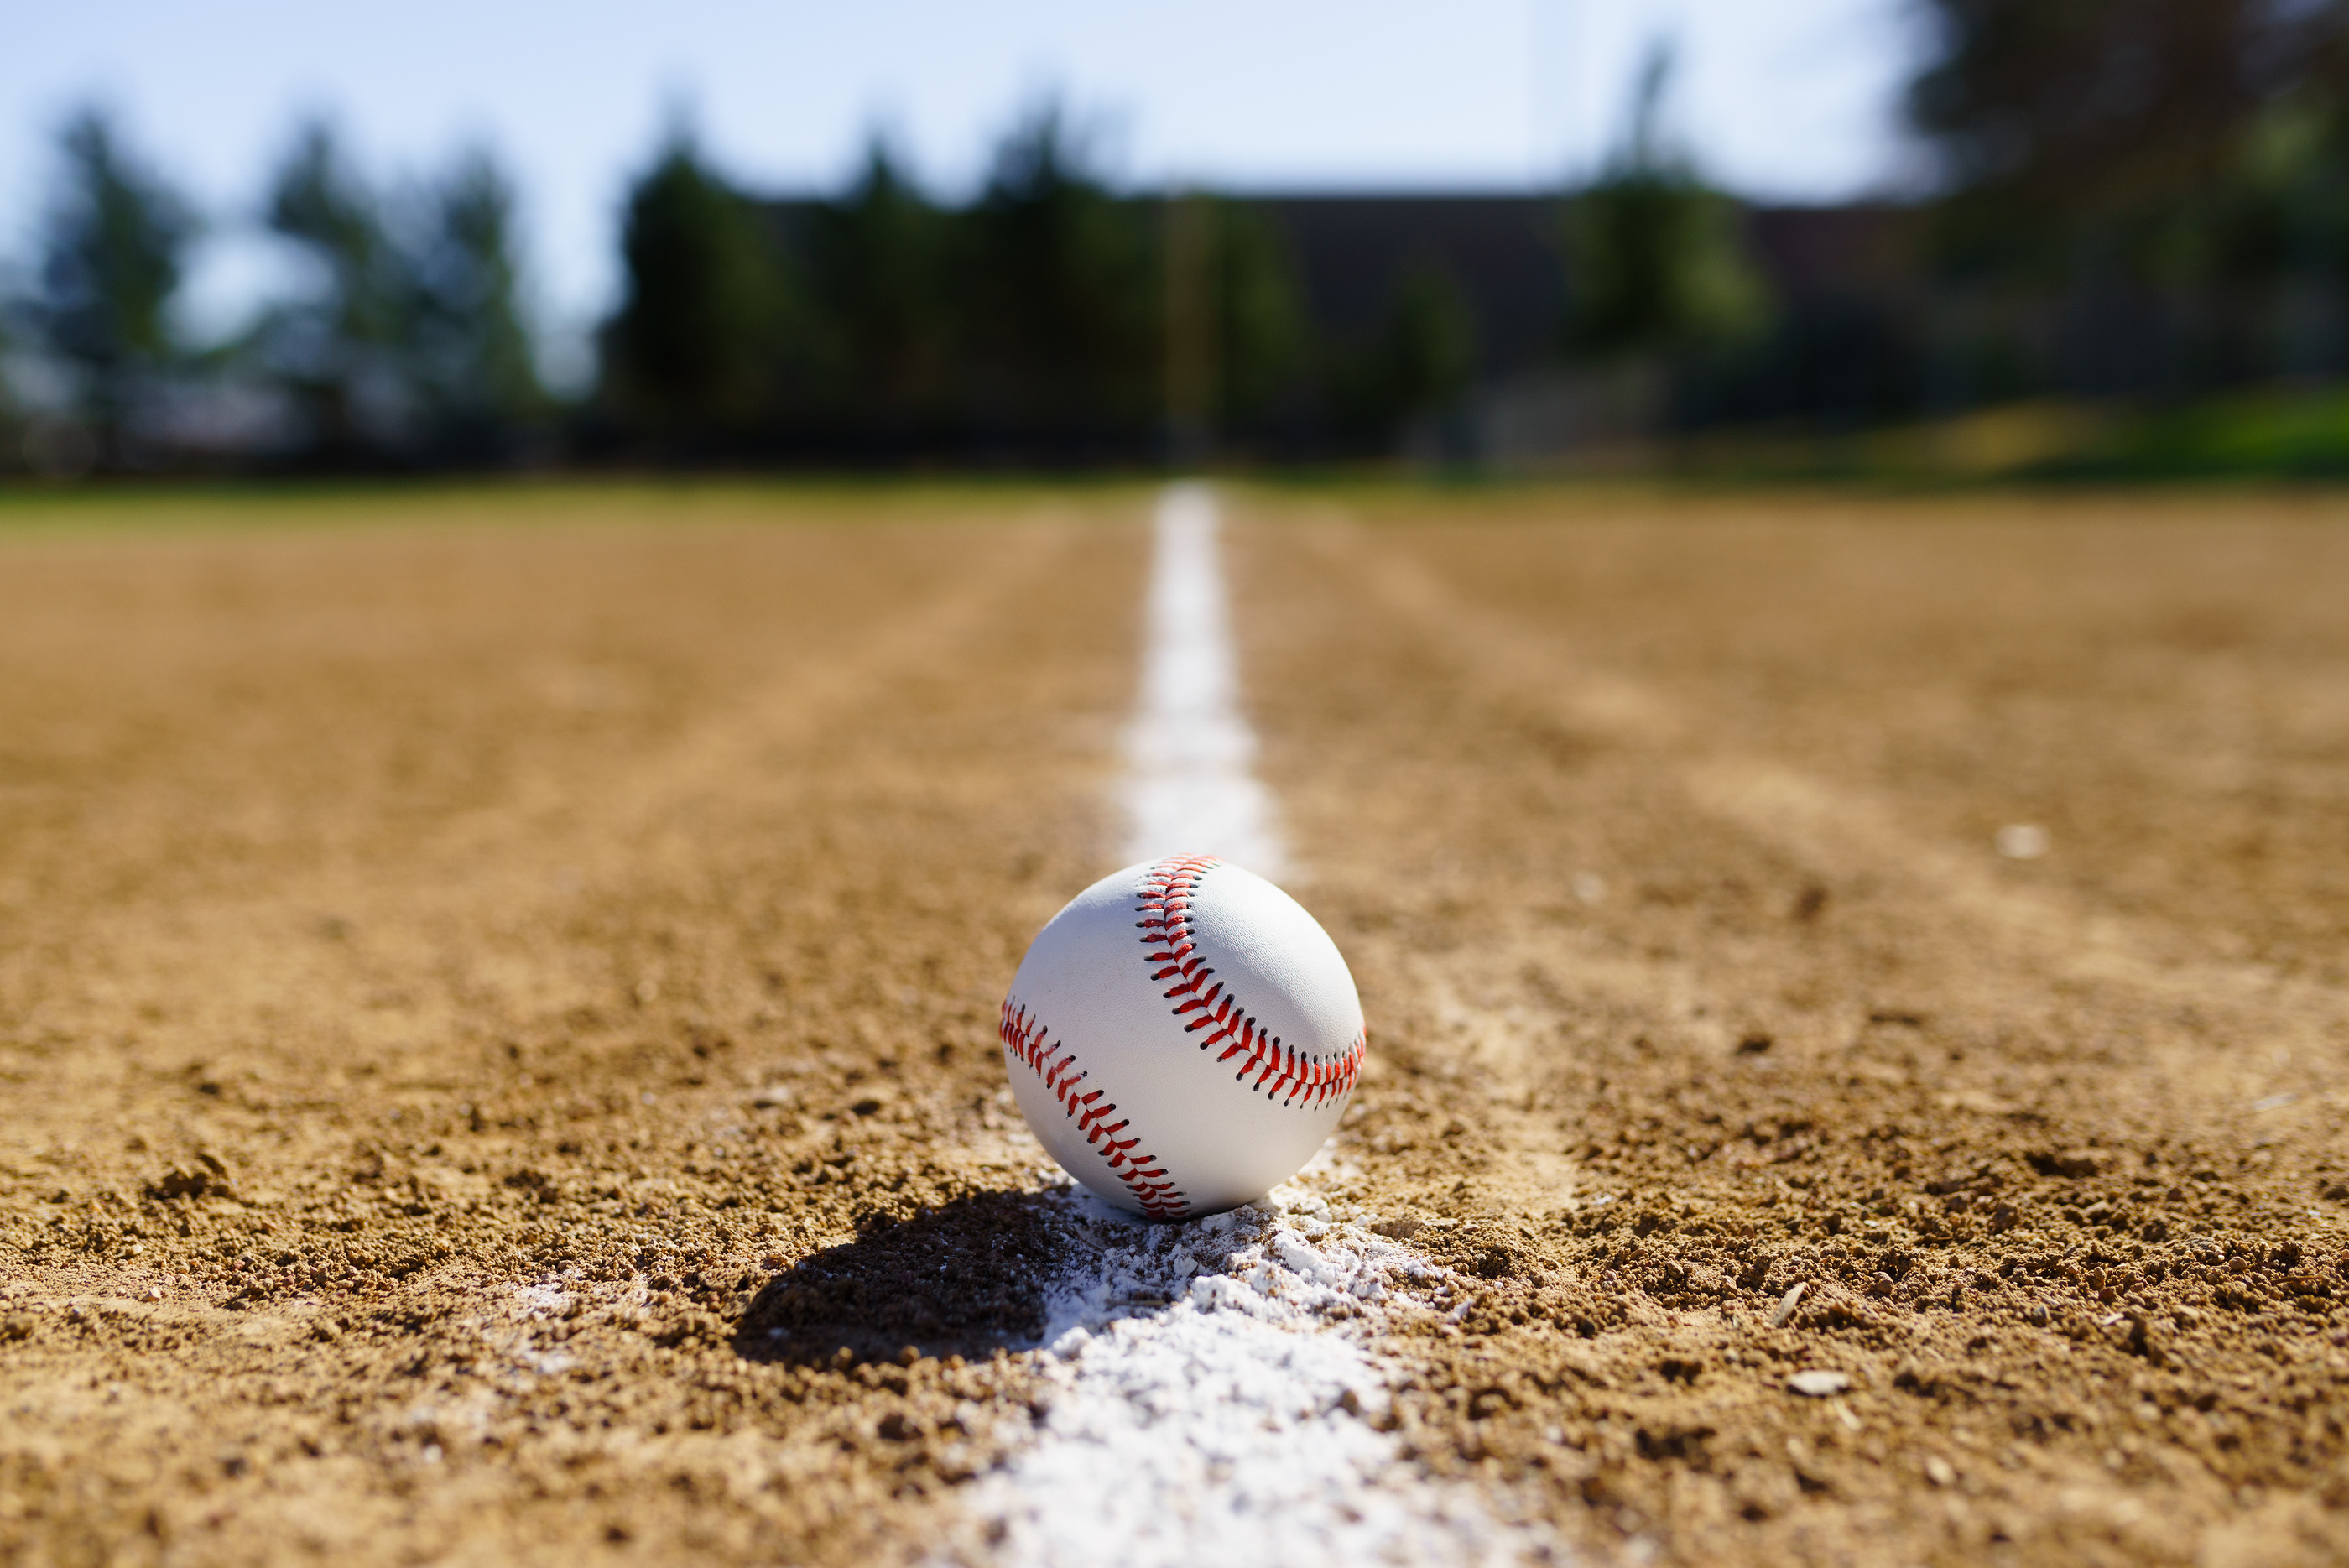 Baseball Laying On A Baseball Field Line